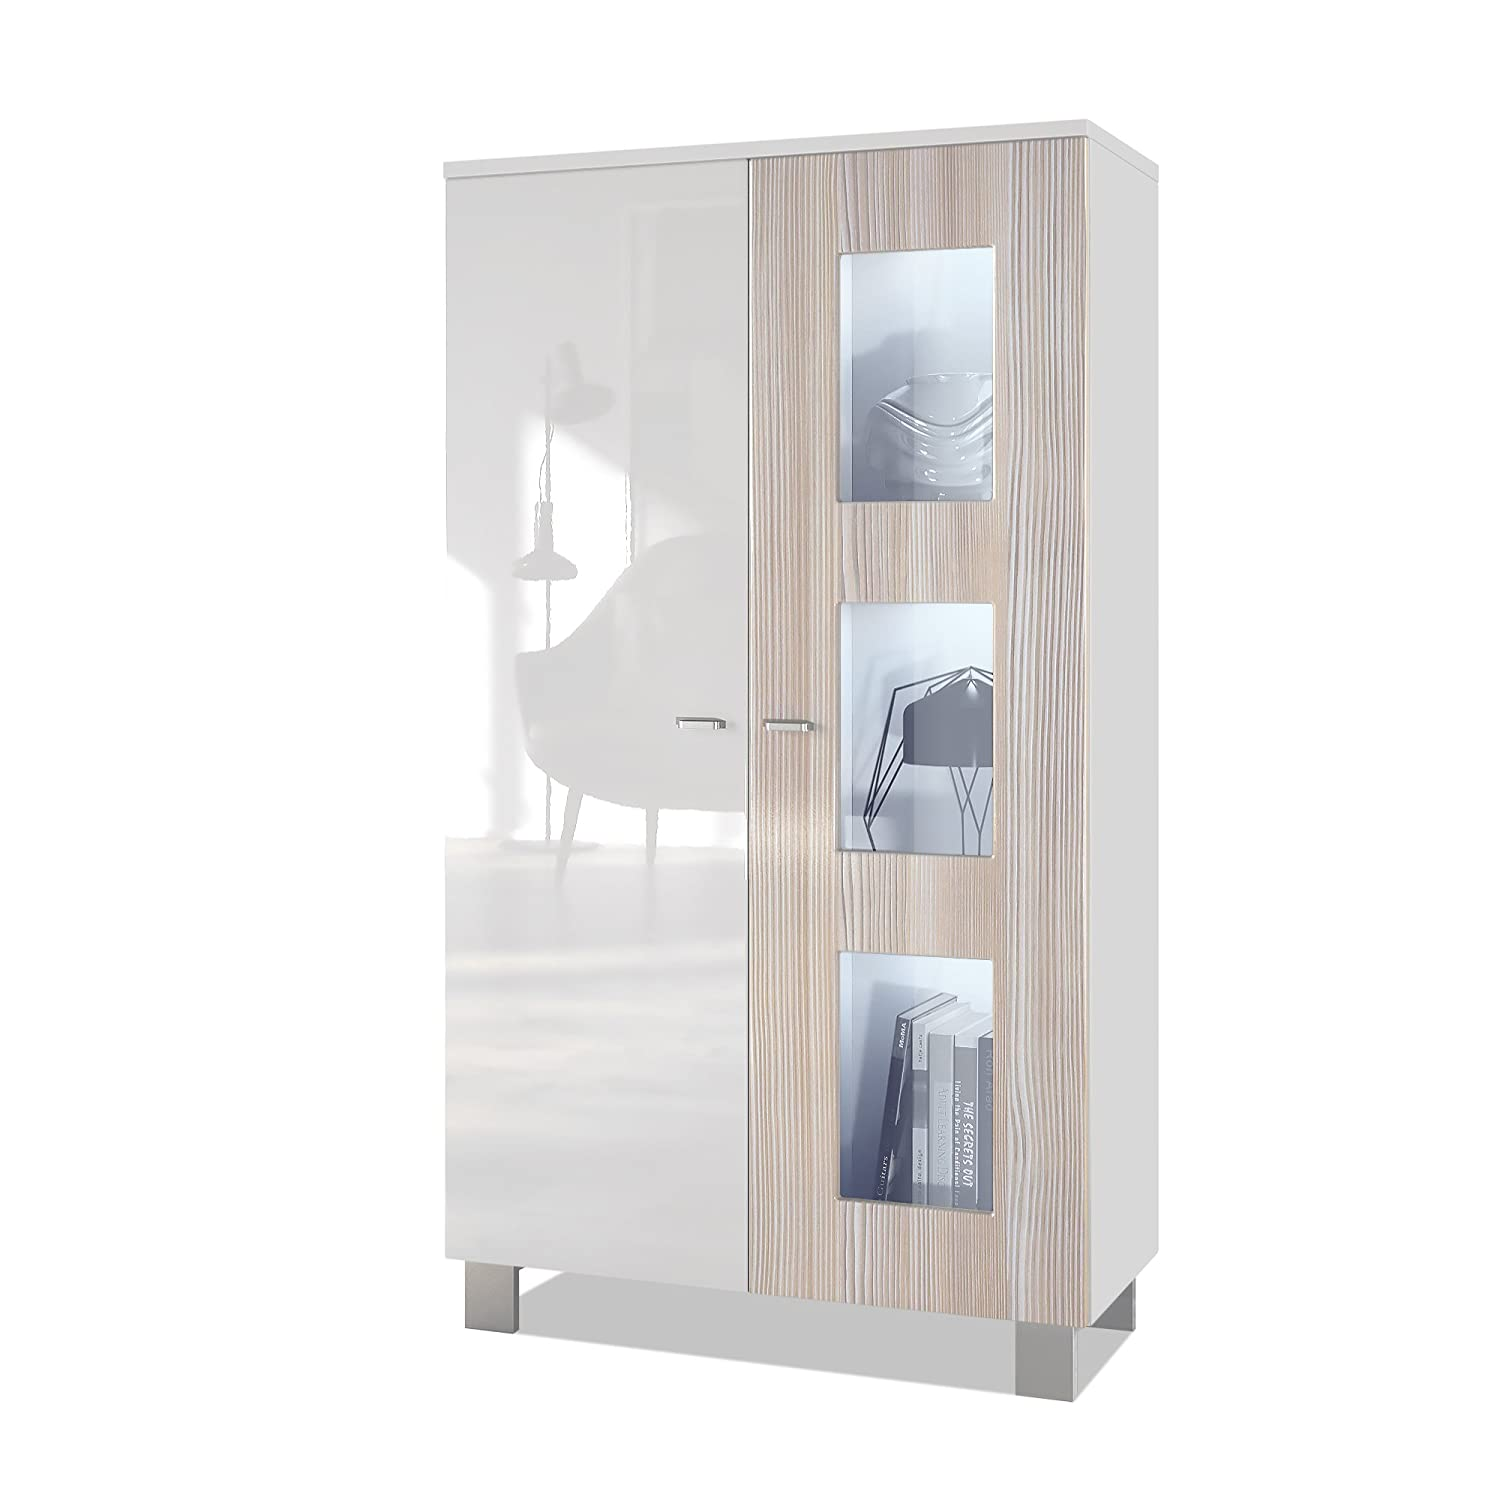 Door in Avola-champagne with LED lighting Vladon Tall Display Cabinet Cupboard Denjo, Carcass in White matt Front in White High Gloss